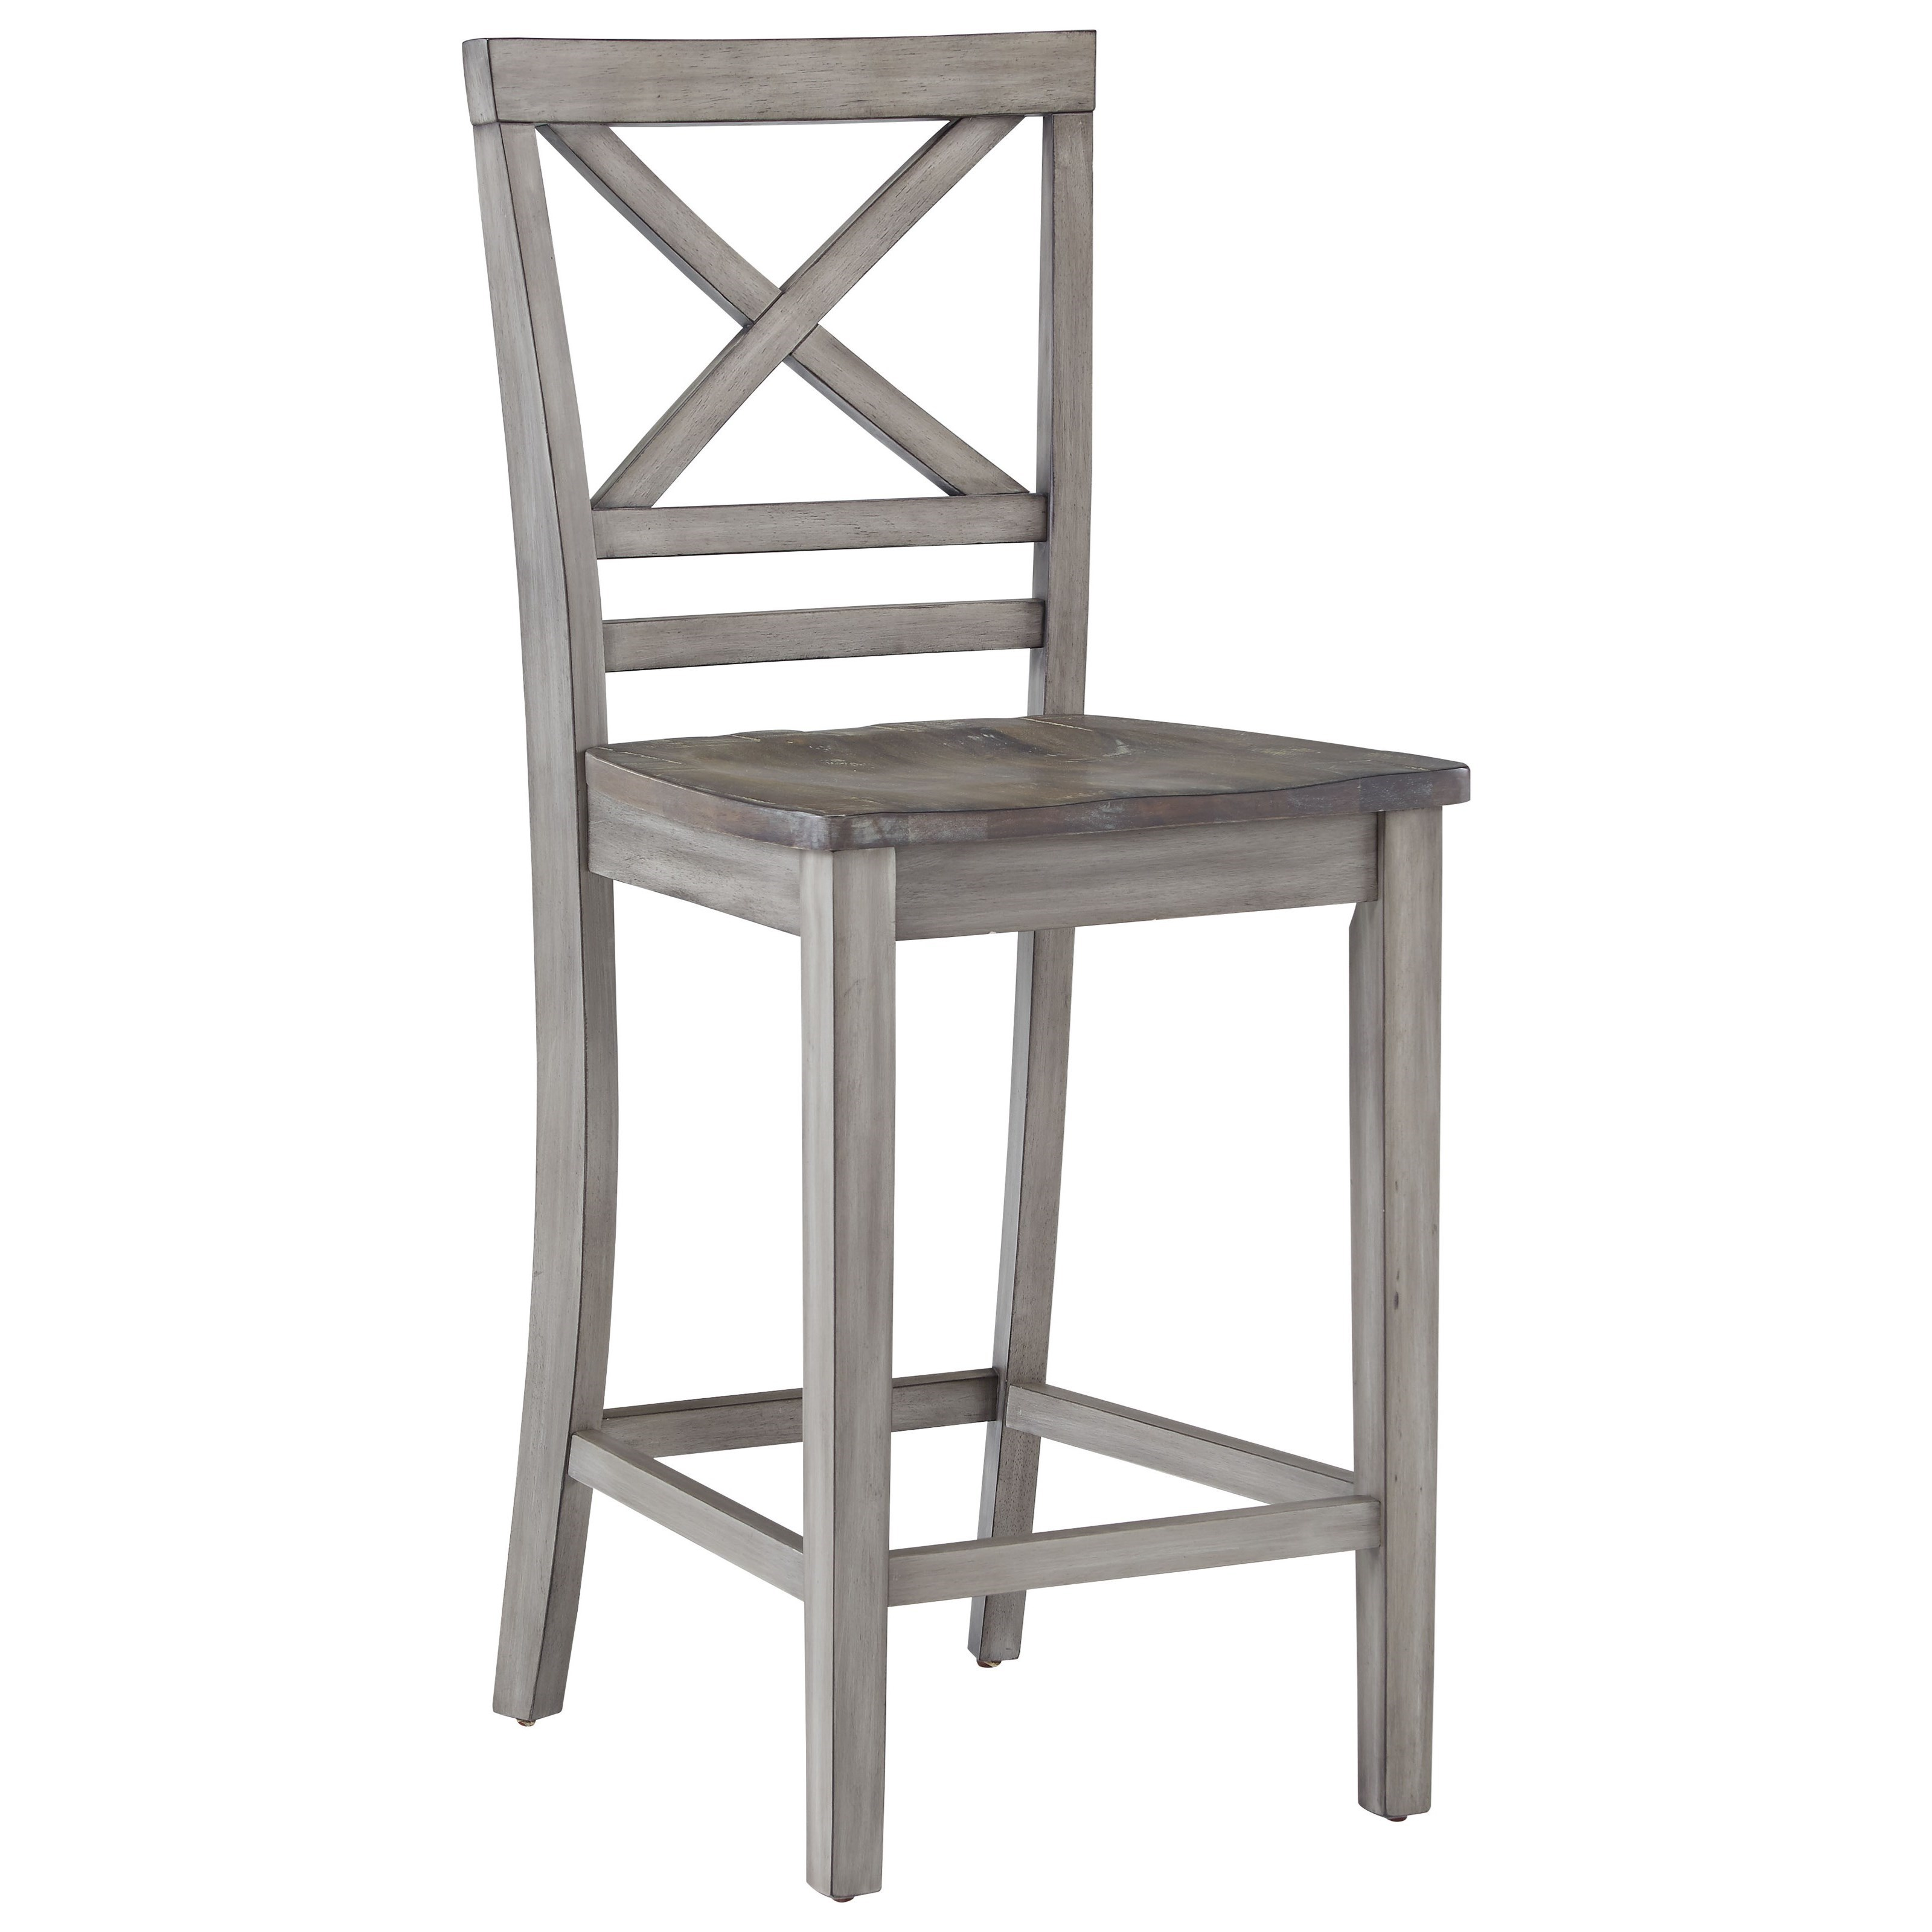 Standard Furniture Fairhaven 12874 Rustic Counter Height Barstool Great American Home Store